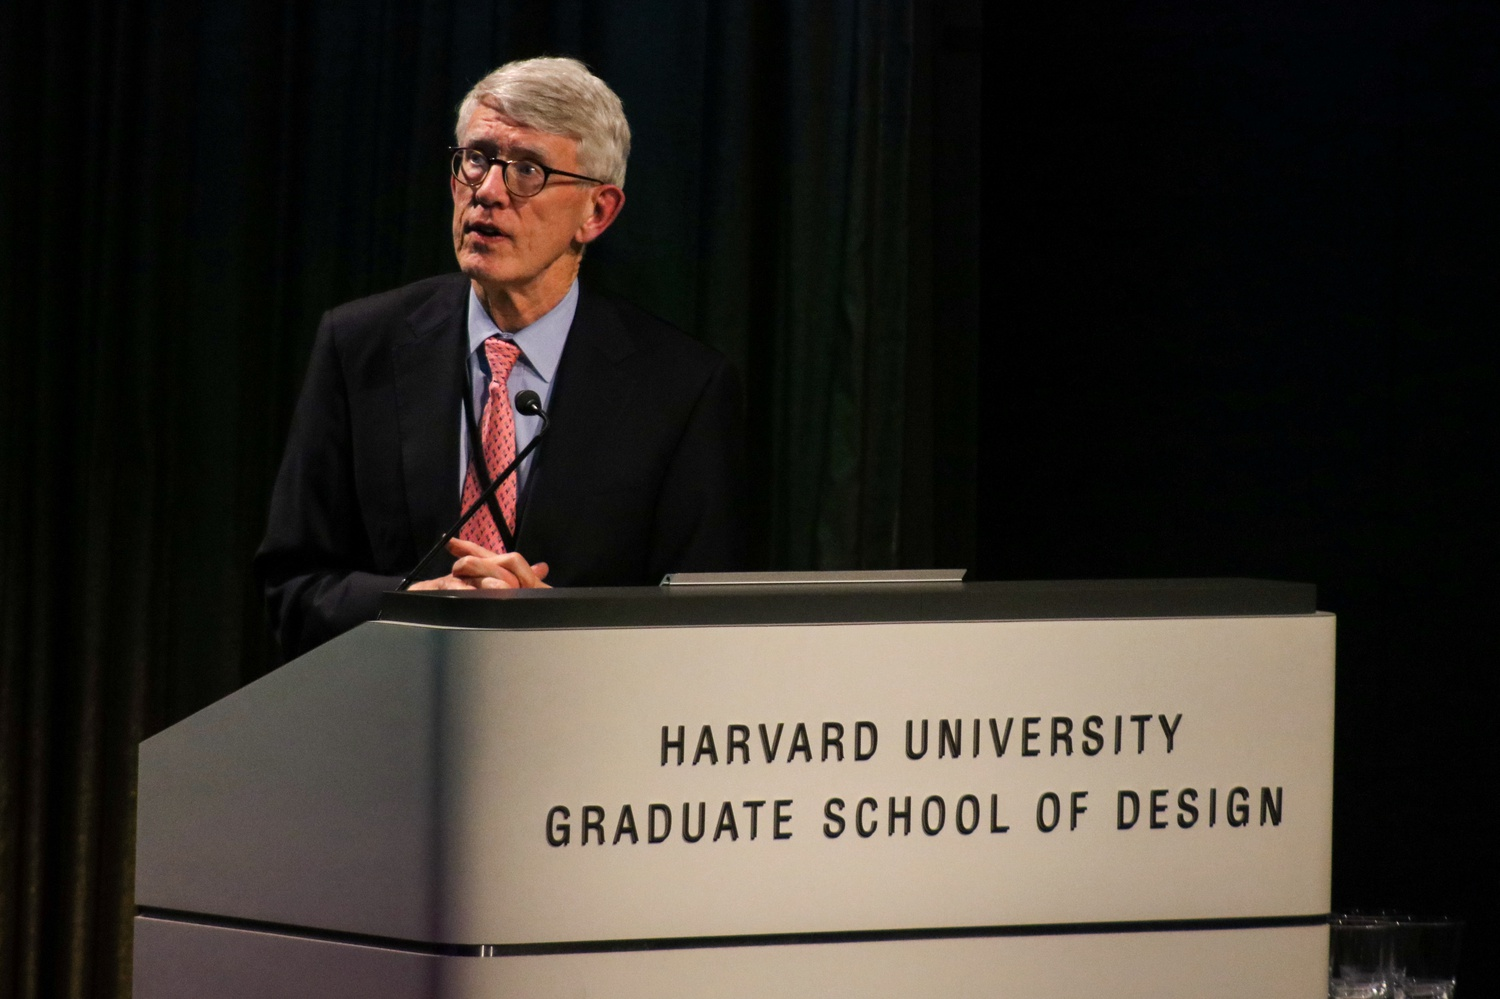 Thomas P. Glynn III, CEO of the Harvard Allston Land Company and lecturer at the Graduate School of Design, speaks about University development in Allston Tuesday evening.